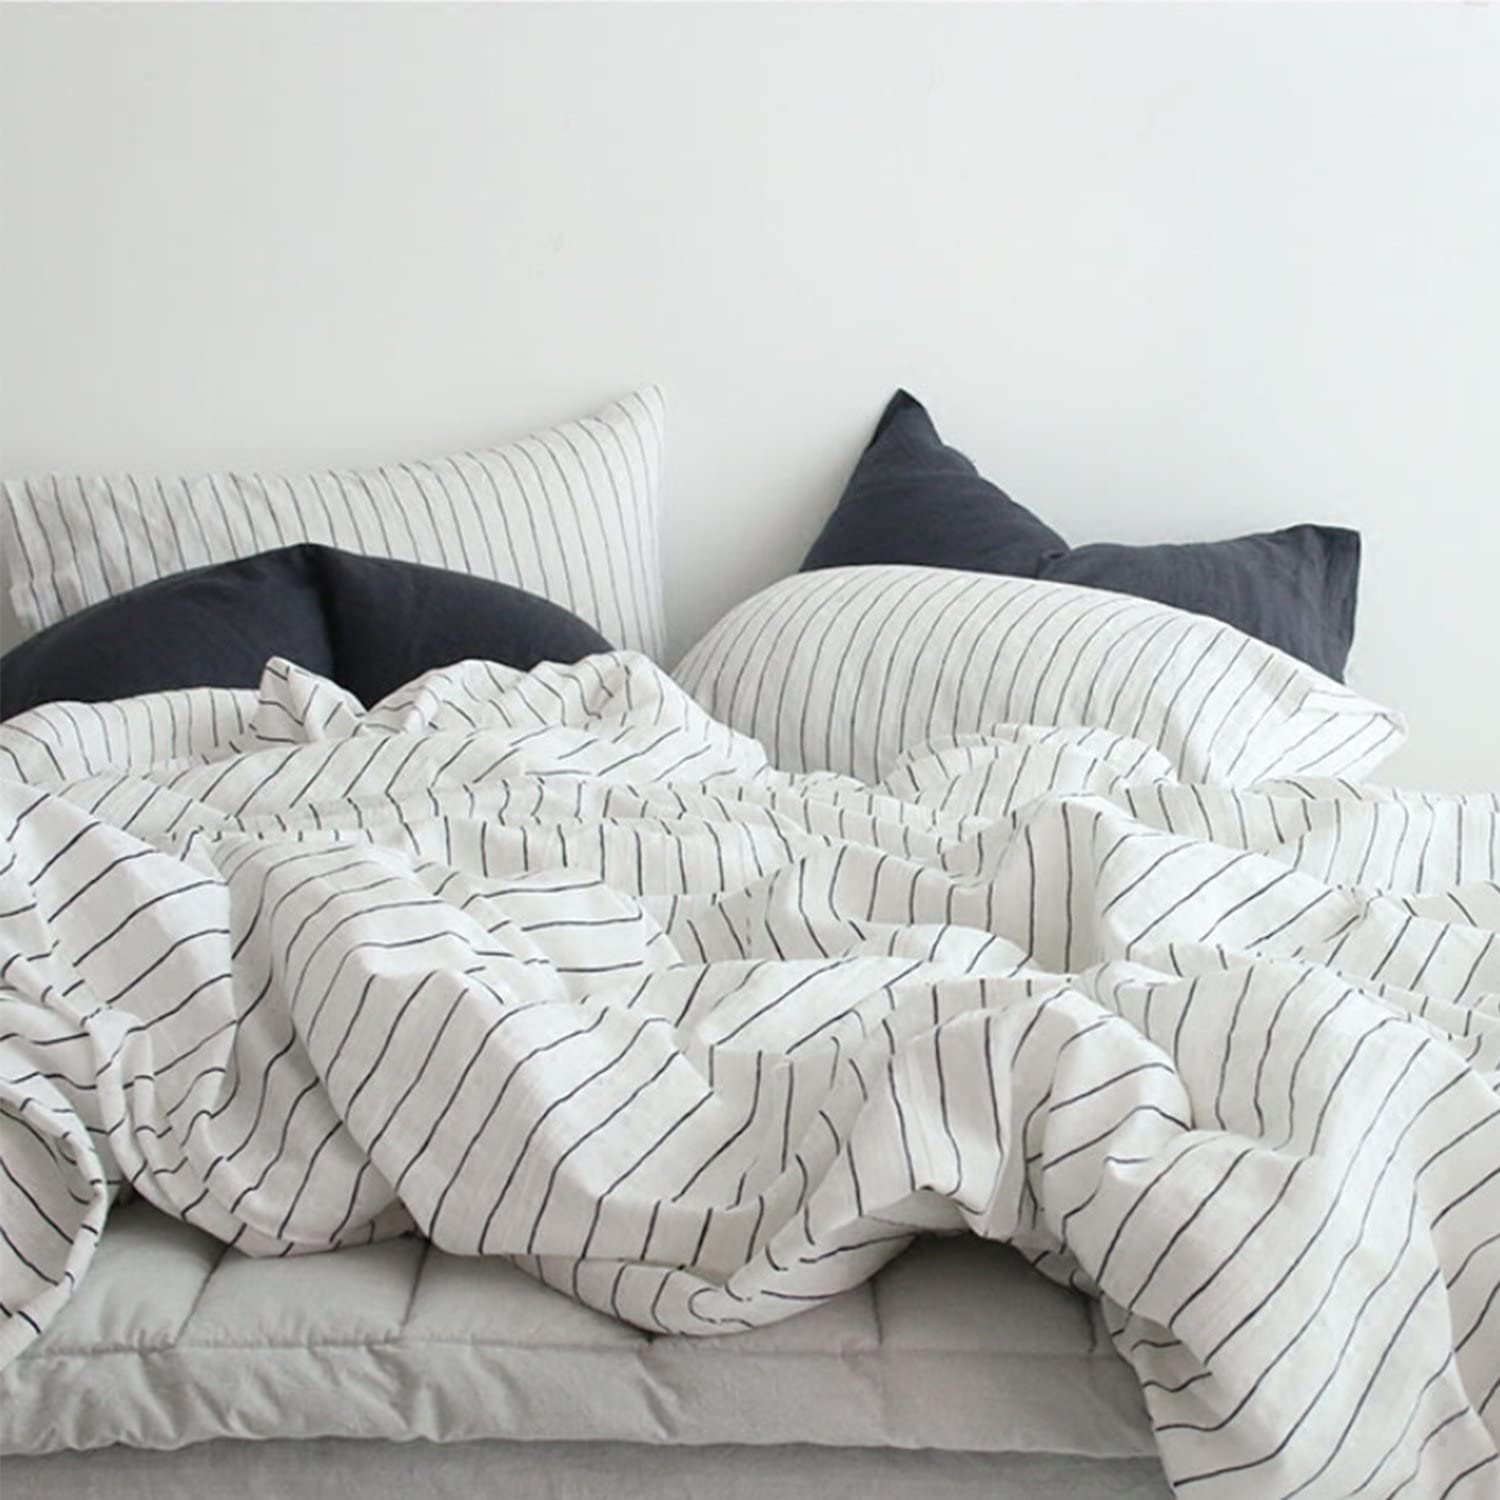 MooMee Bedding Duvet Cover Set 100% Washed Cotton